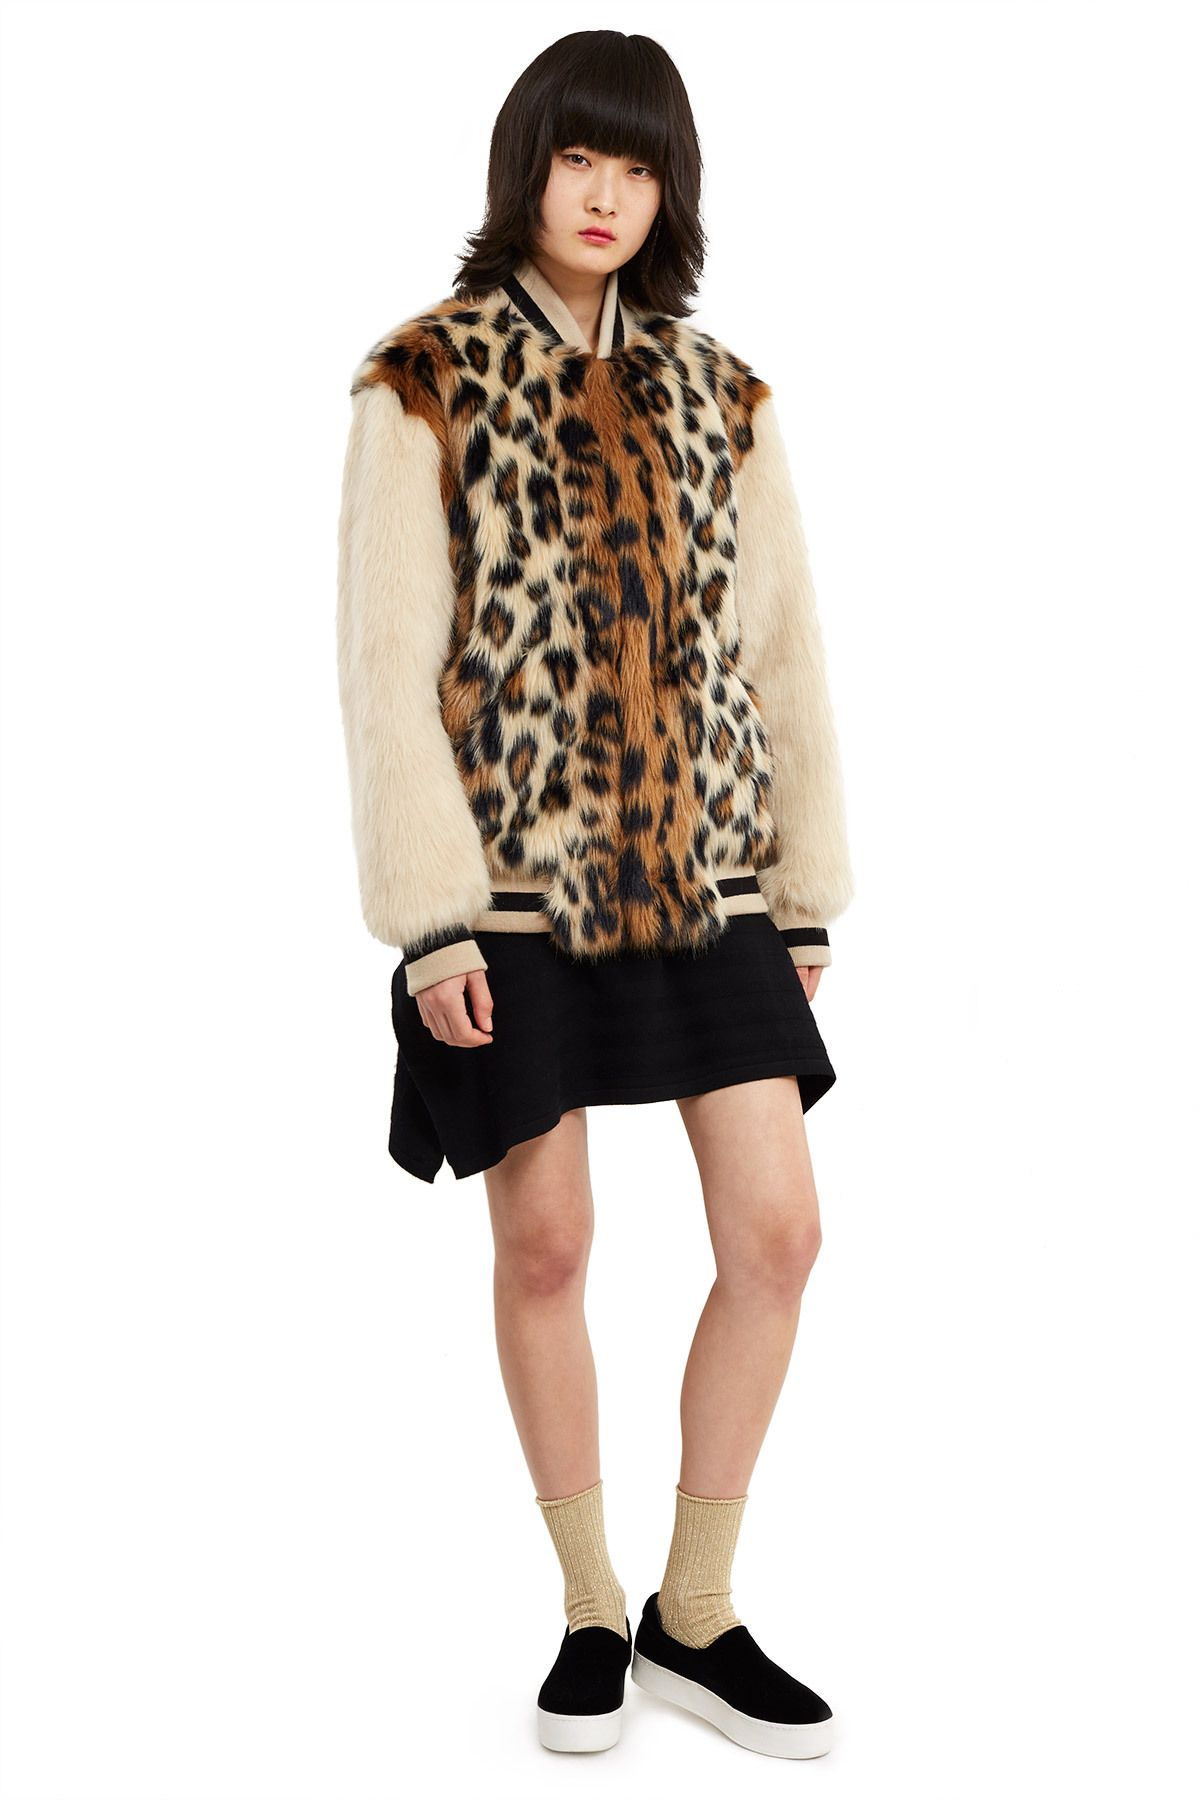 Opening Ceremony Faux Fur Varsity Jacket Faux Fur Leopard Print Front Snap Button Closures Slanted Front Pocke Fashion Opening Ceremony Outerwear Jackets [ 1800 x 1200 Pixel ]